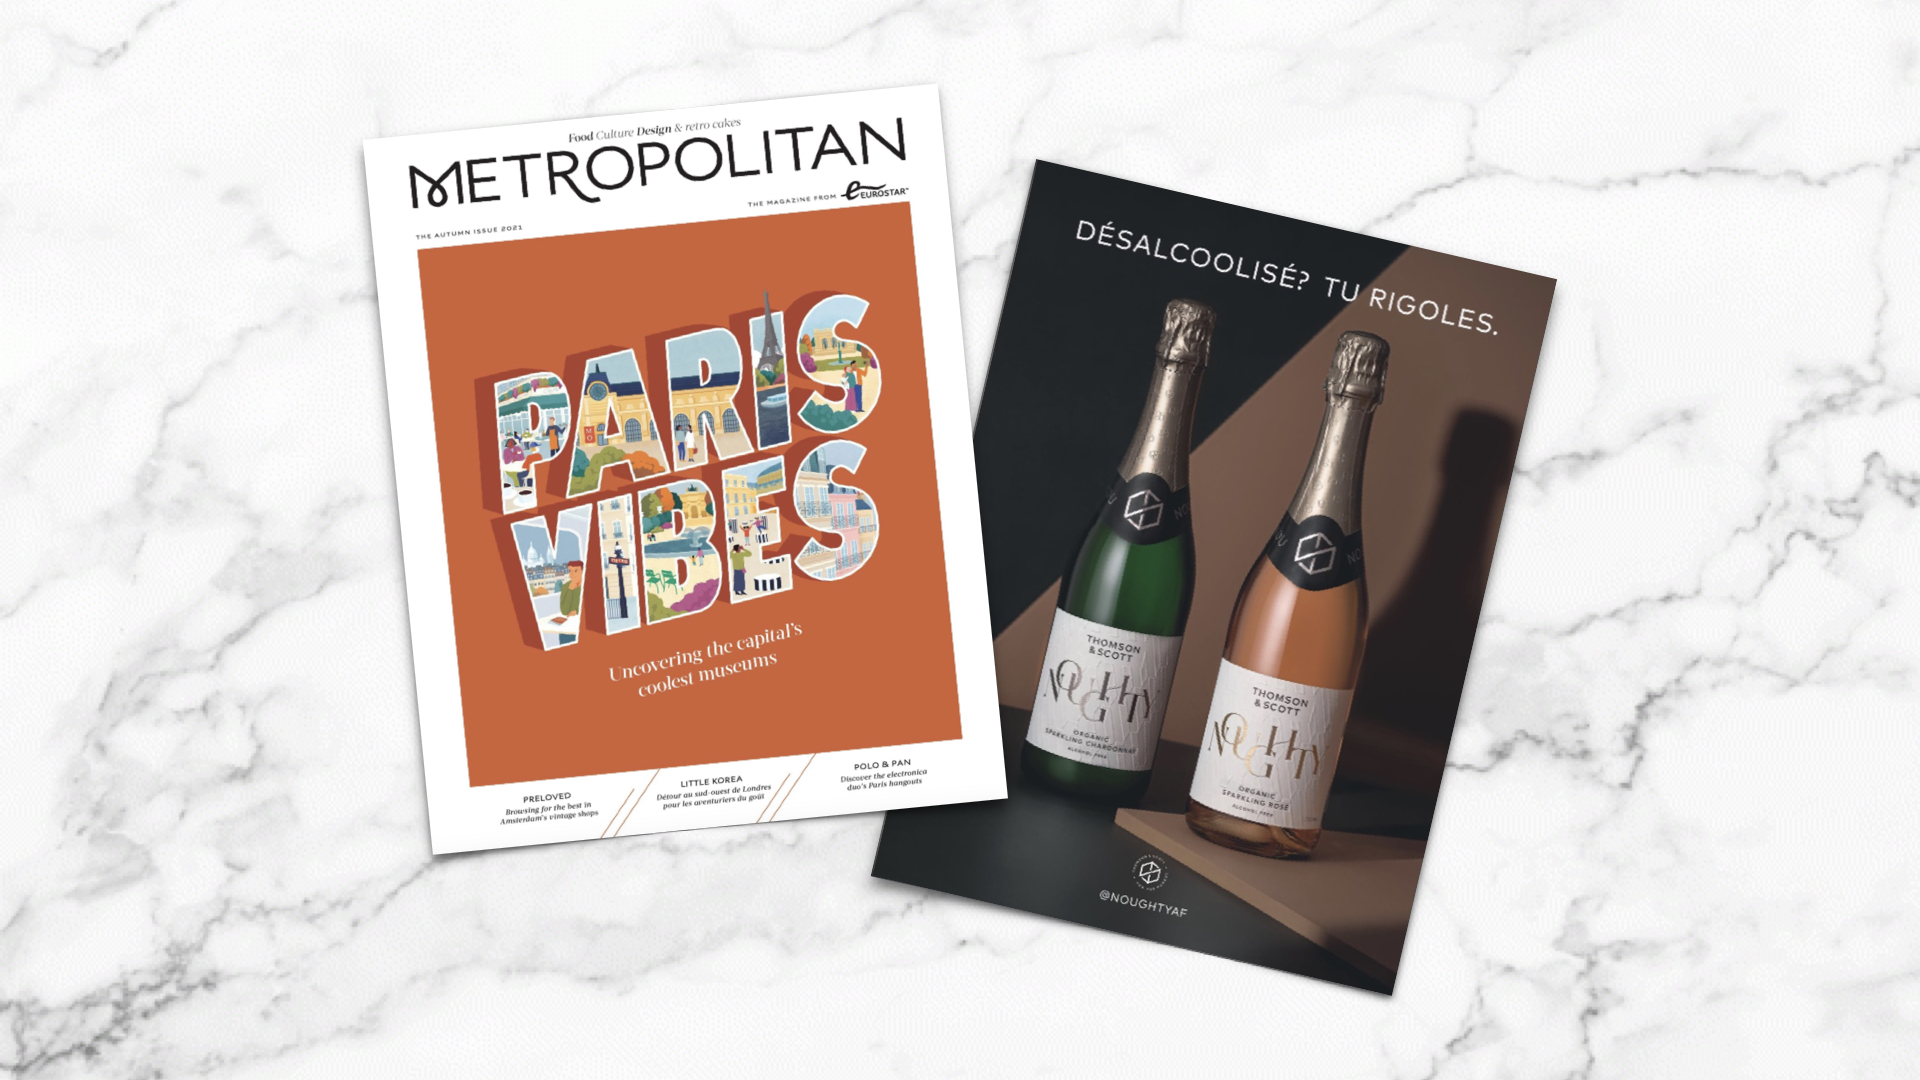 Bonjour my British chums and welcome to our first advertisement in the well-read Eurostar magazine Metropolitan. Abit like taking coals to Newcastle, we are introducing NOUGHTY Brut and Rosé as THE alternative to alcoholic Champagne by putting our bottles right under les nezs of thirsty French passengers who want to tone down their alcohol intake.